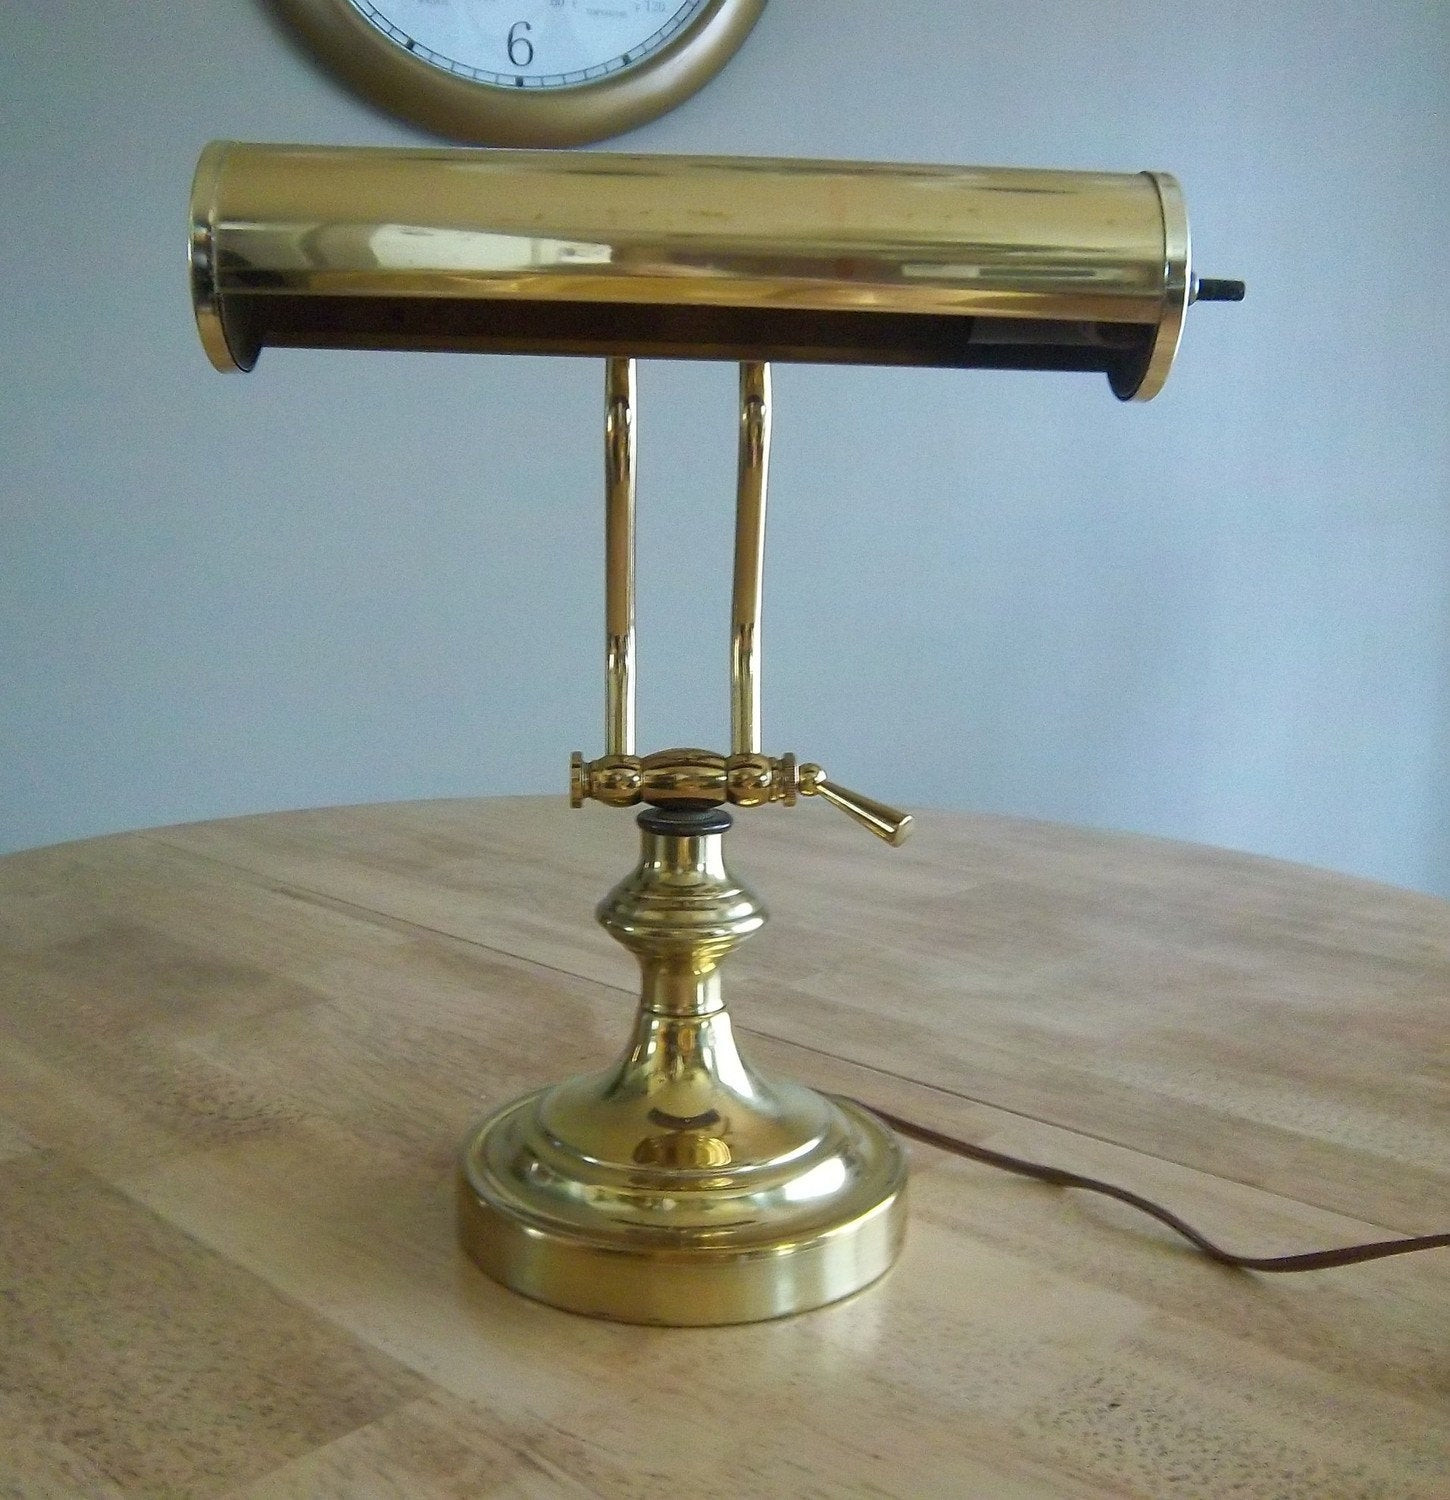 Best ideas about Antique Desk Lamp . Save or Pin Vintage Brass Library Desk Lamp Now.